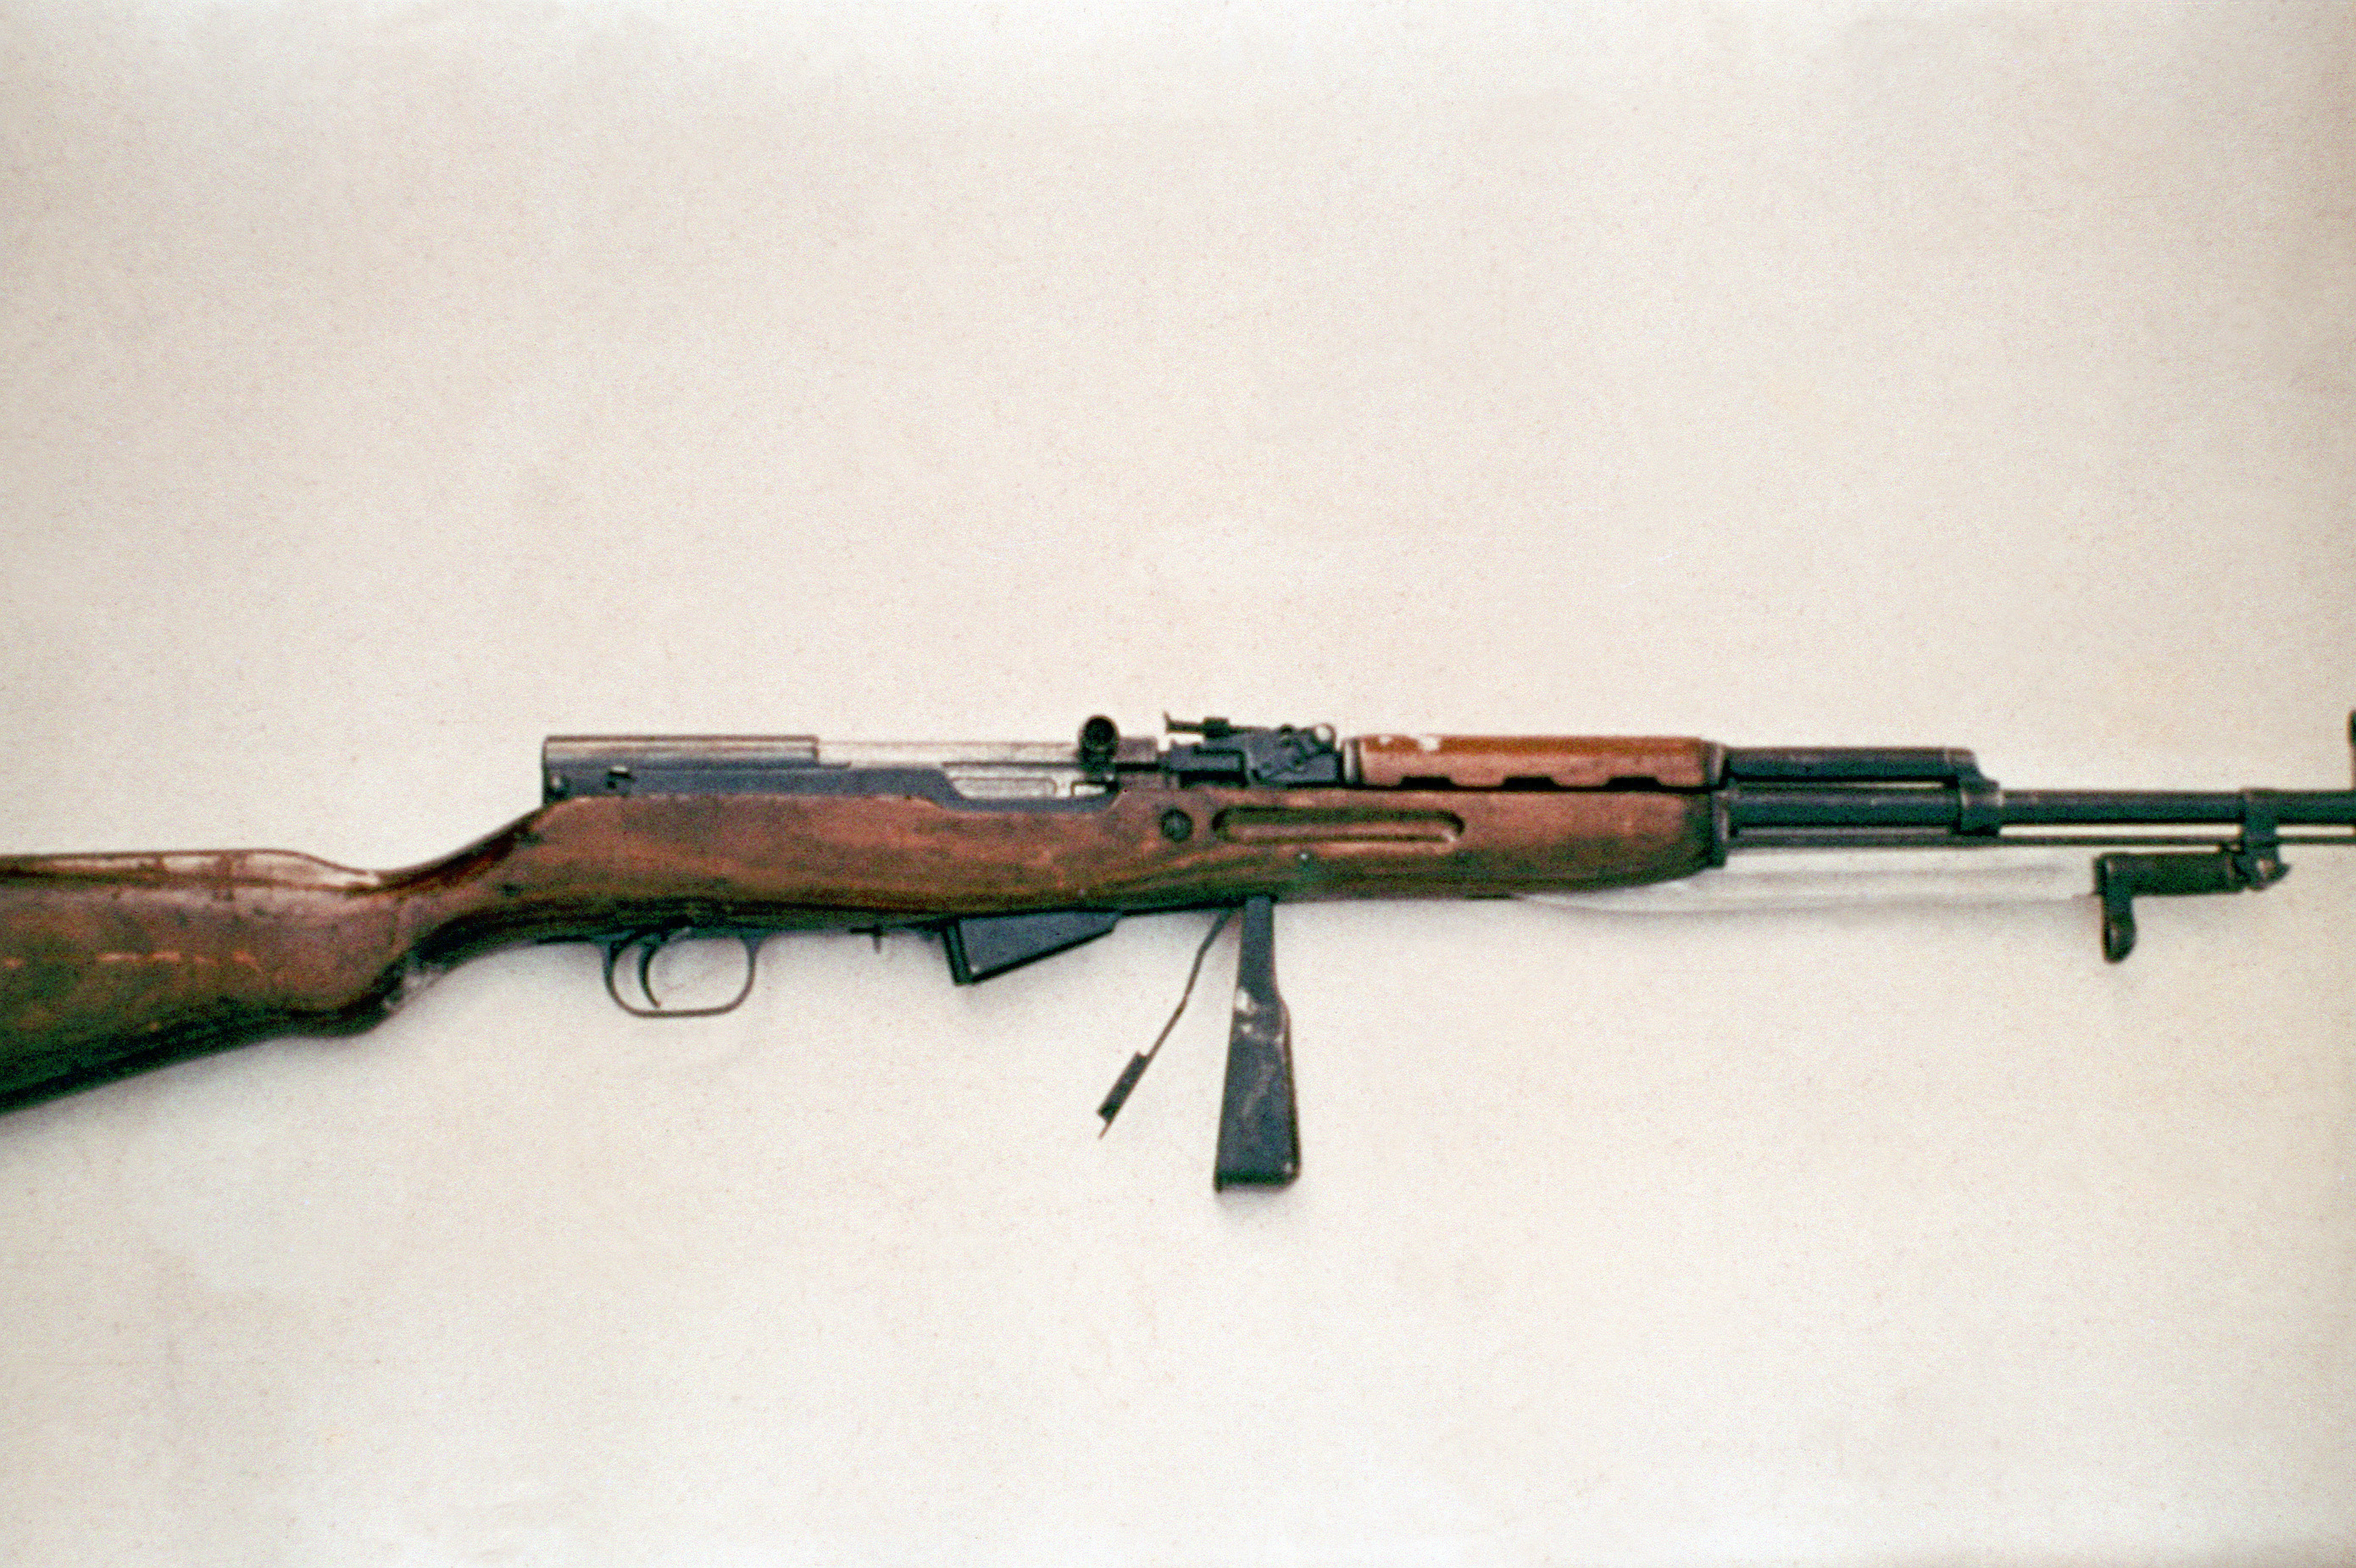 File:SKS 762 rifle.jpg